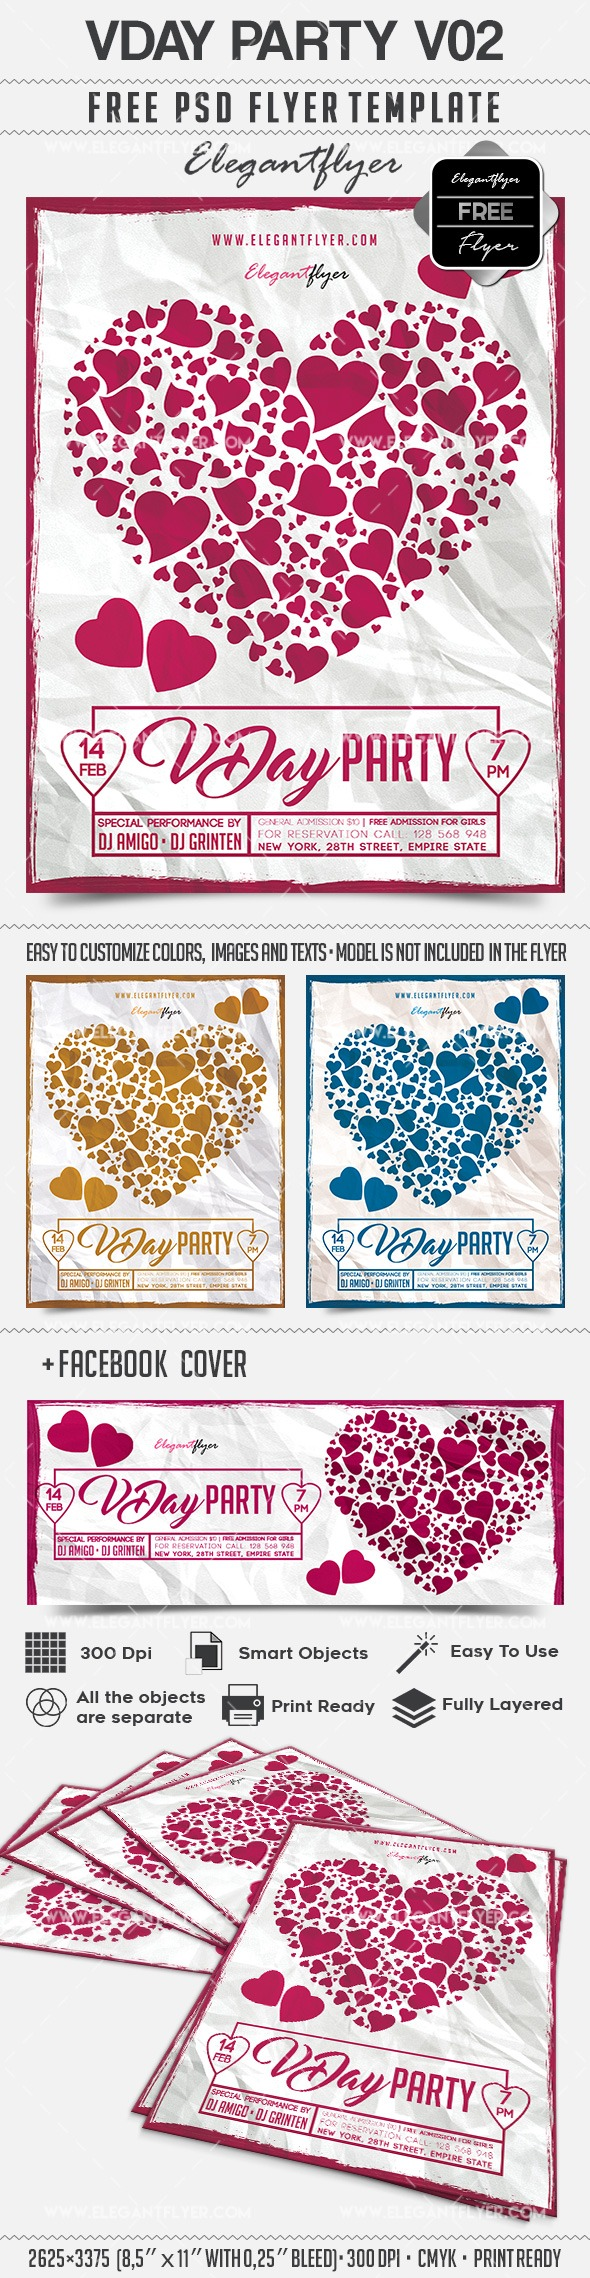 VDay Party V02 – Free Flyer PSD Template